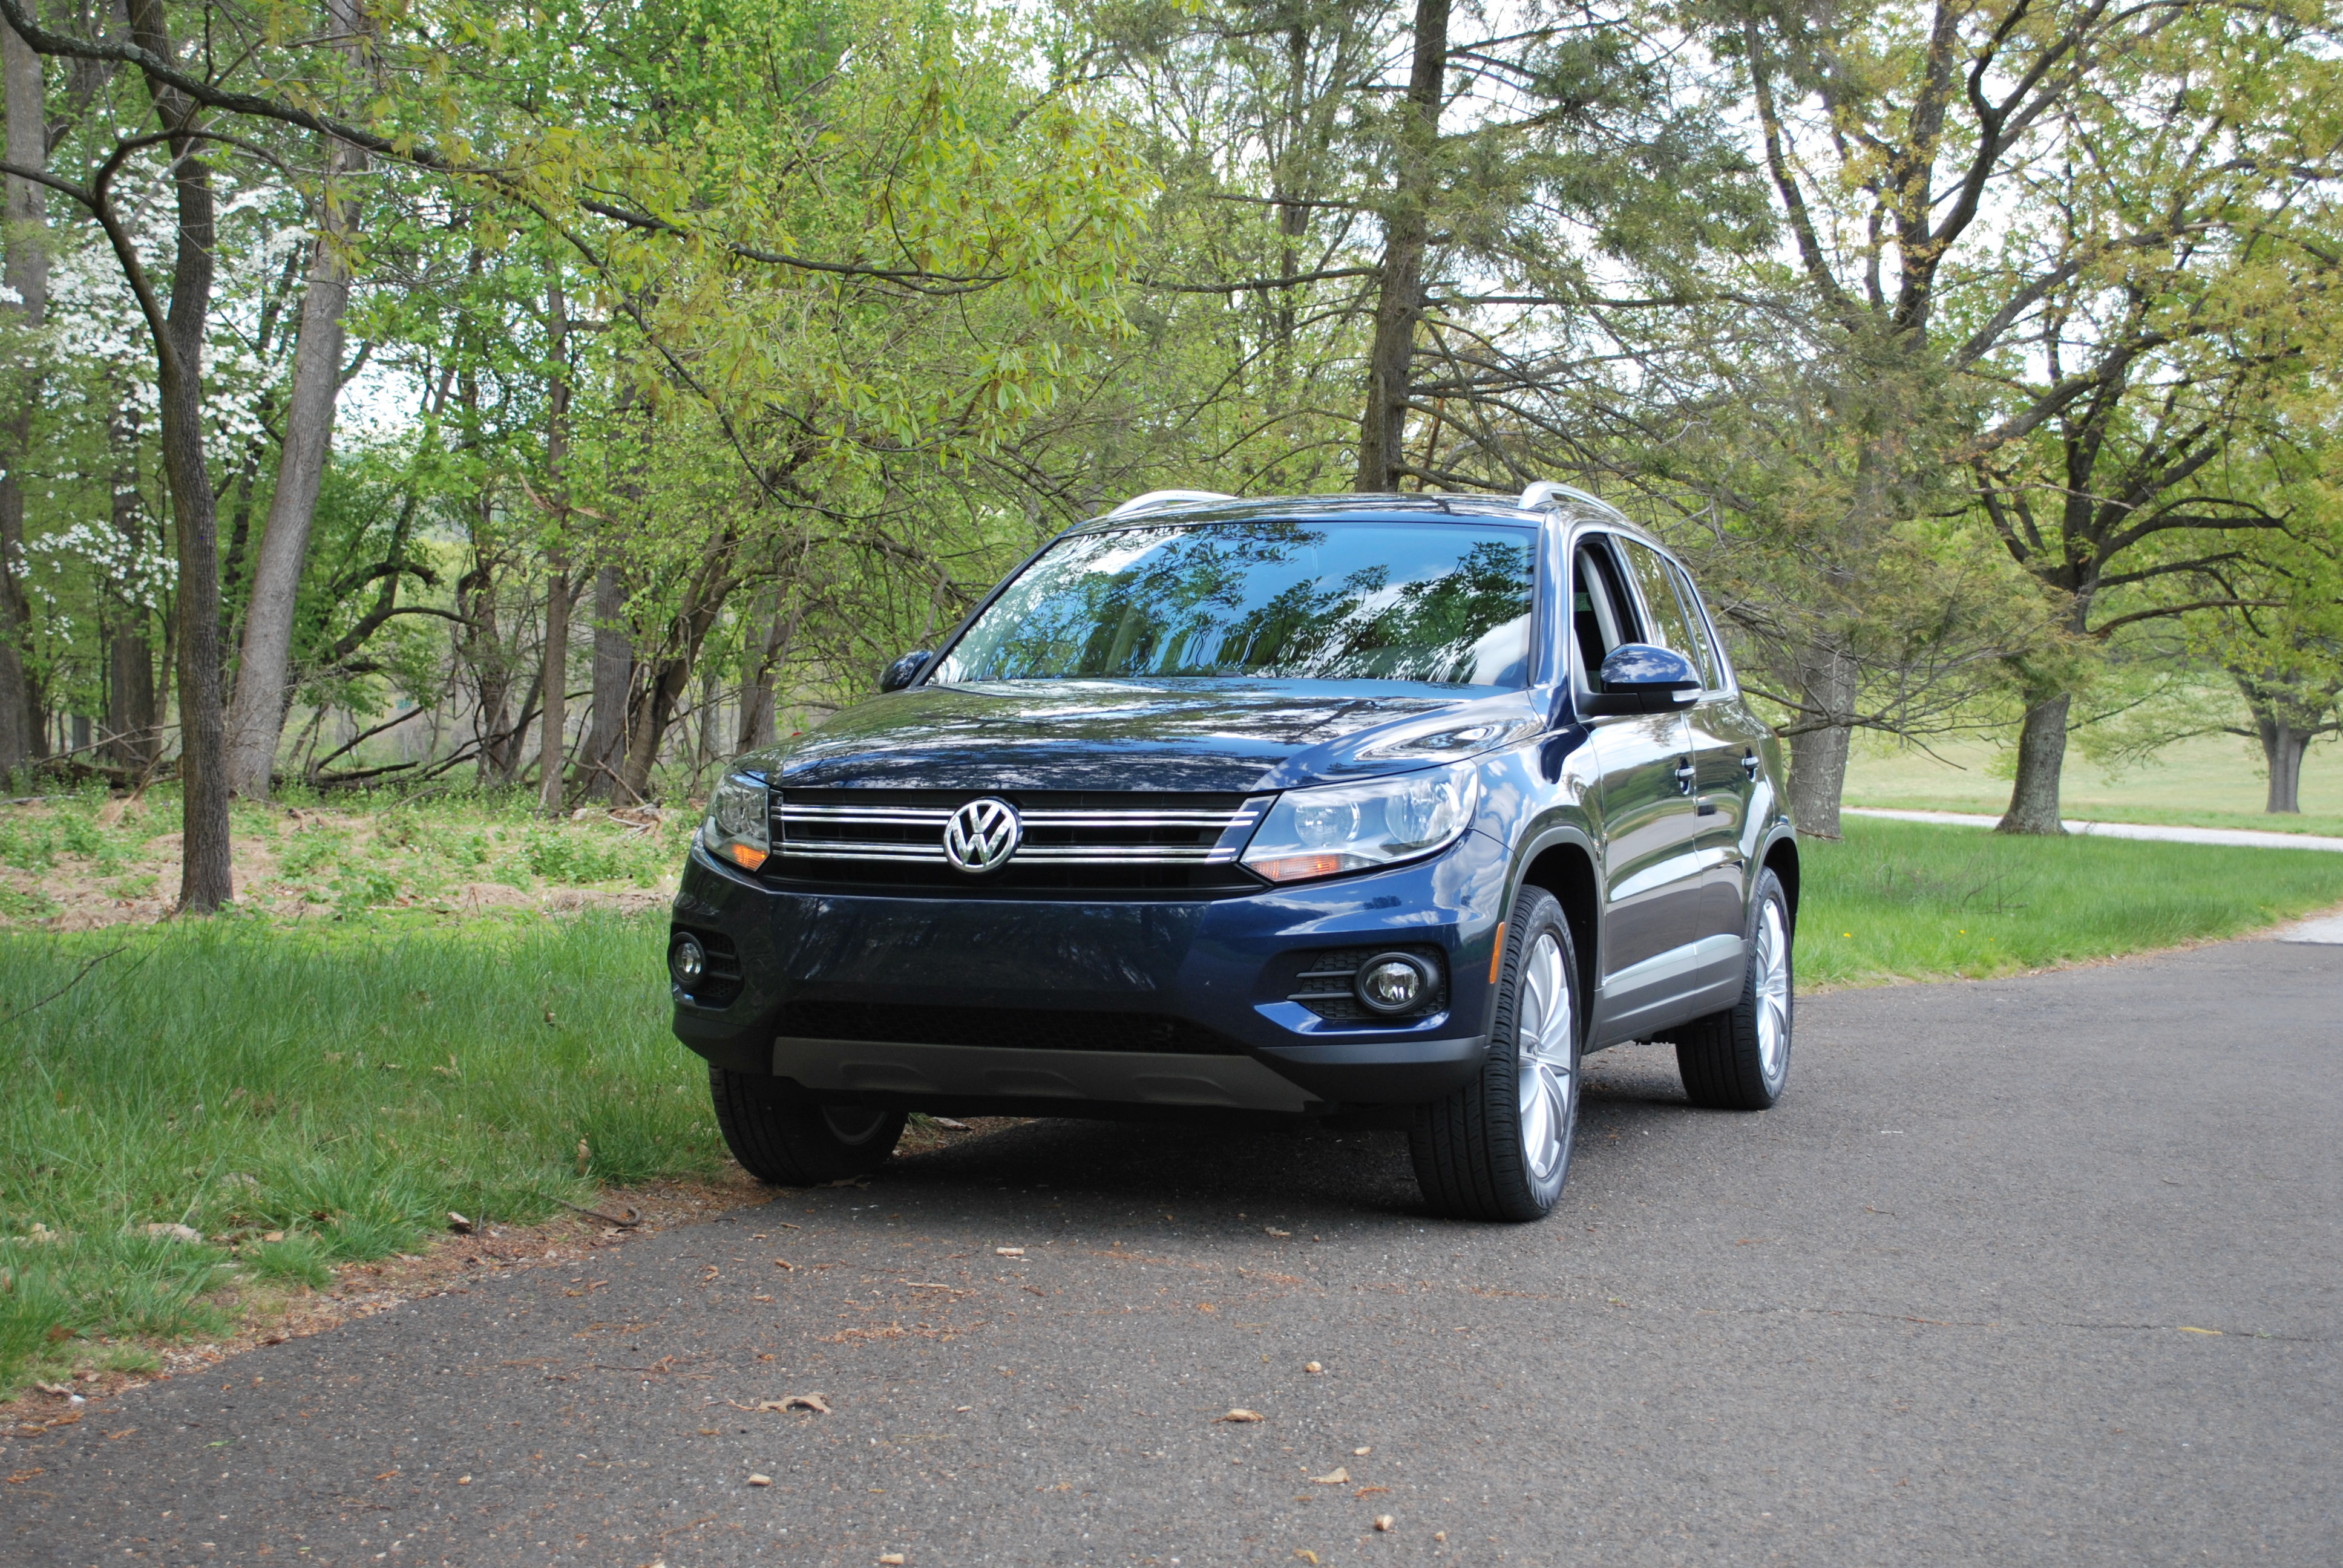 all tiguan low volkswagen drive overview inventory features turbo miles owner with wheel